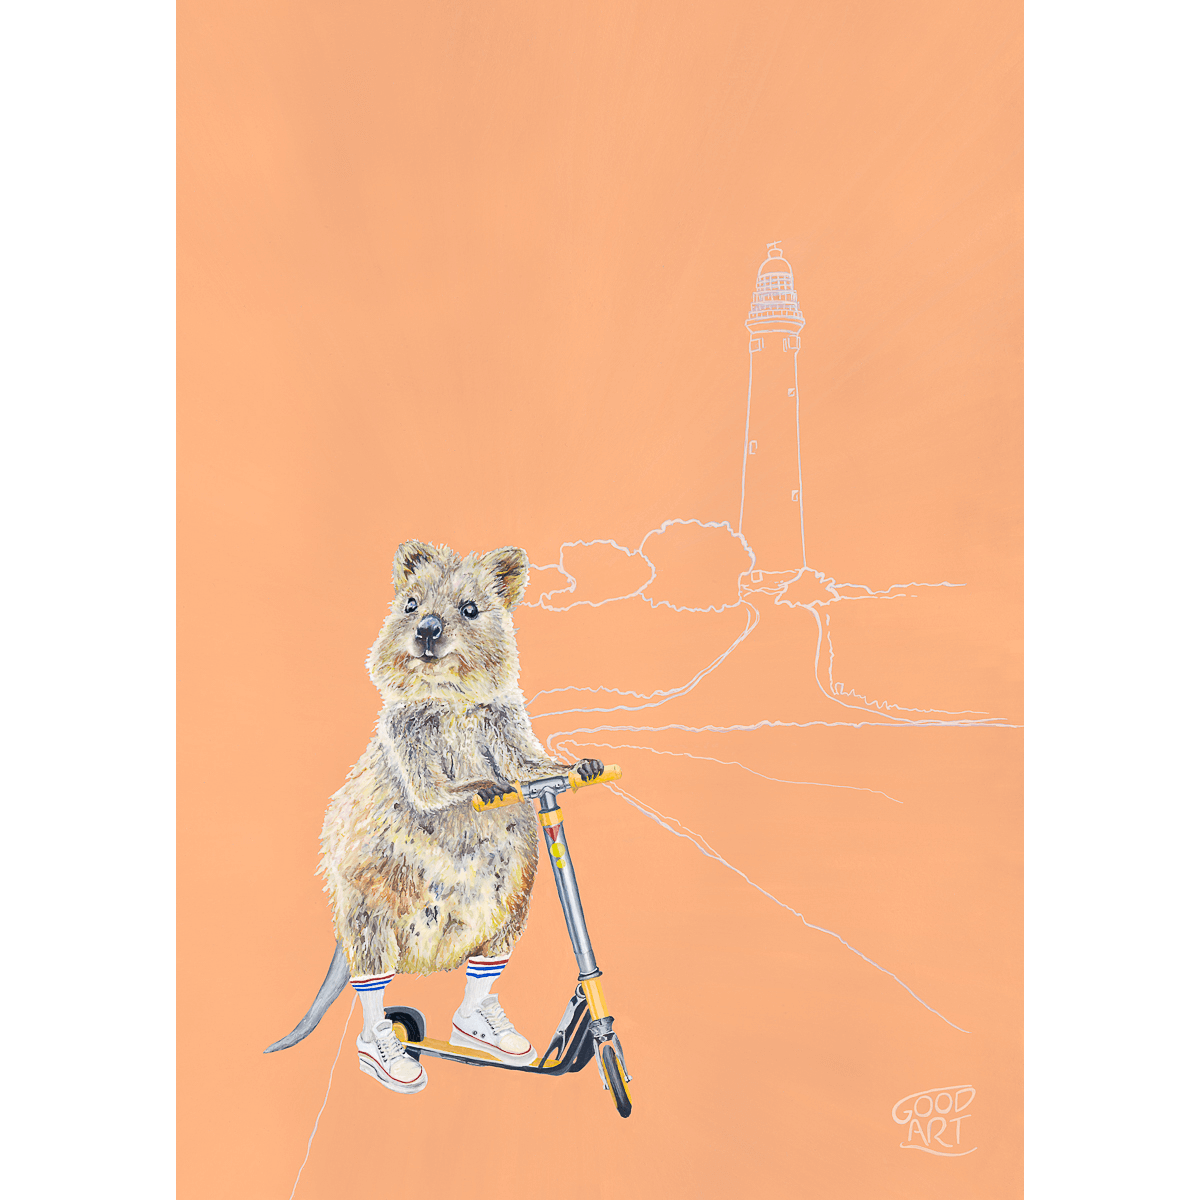 Rottnest Island Quokka kids print painted by artist Jaelle Pedroli. The Quokka is riding a scooter. Apricot coloured background.